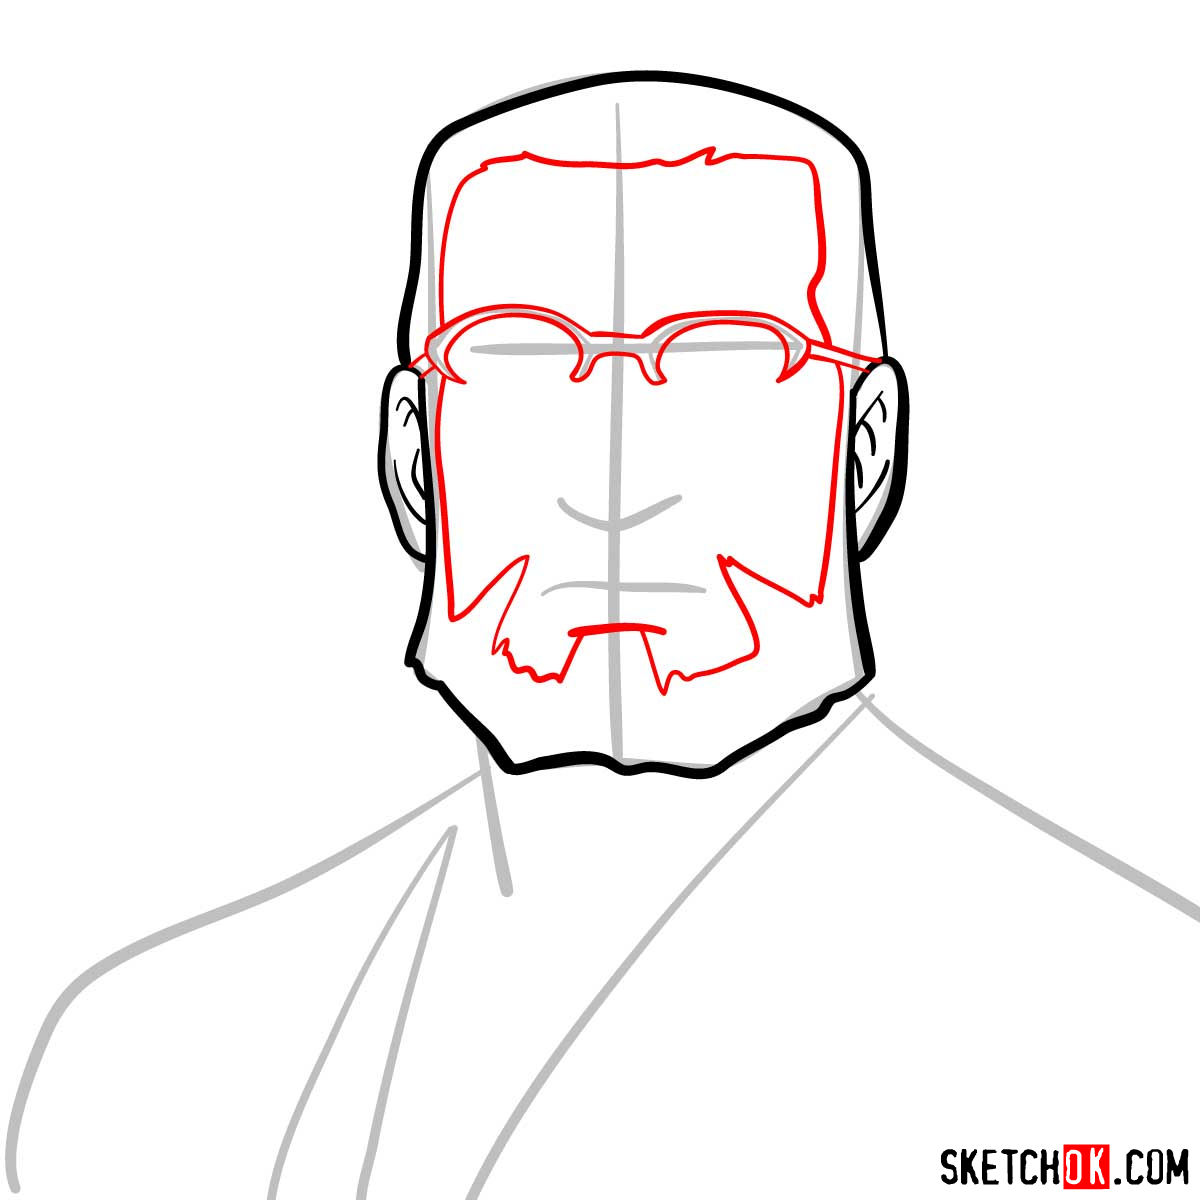 How to draw Van Hohenheim from Fullmetal Alchemist anime - step 05